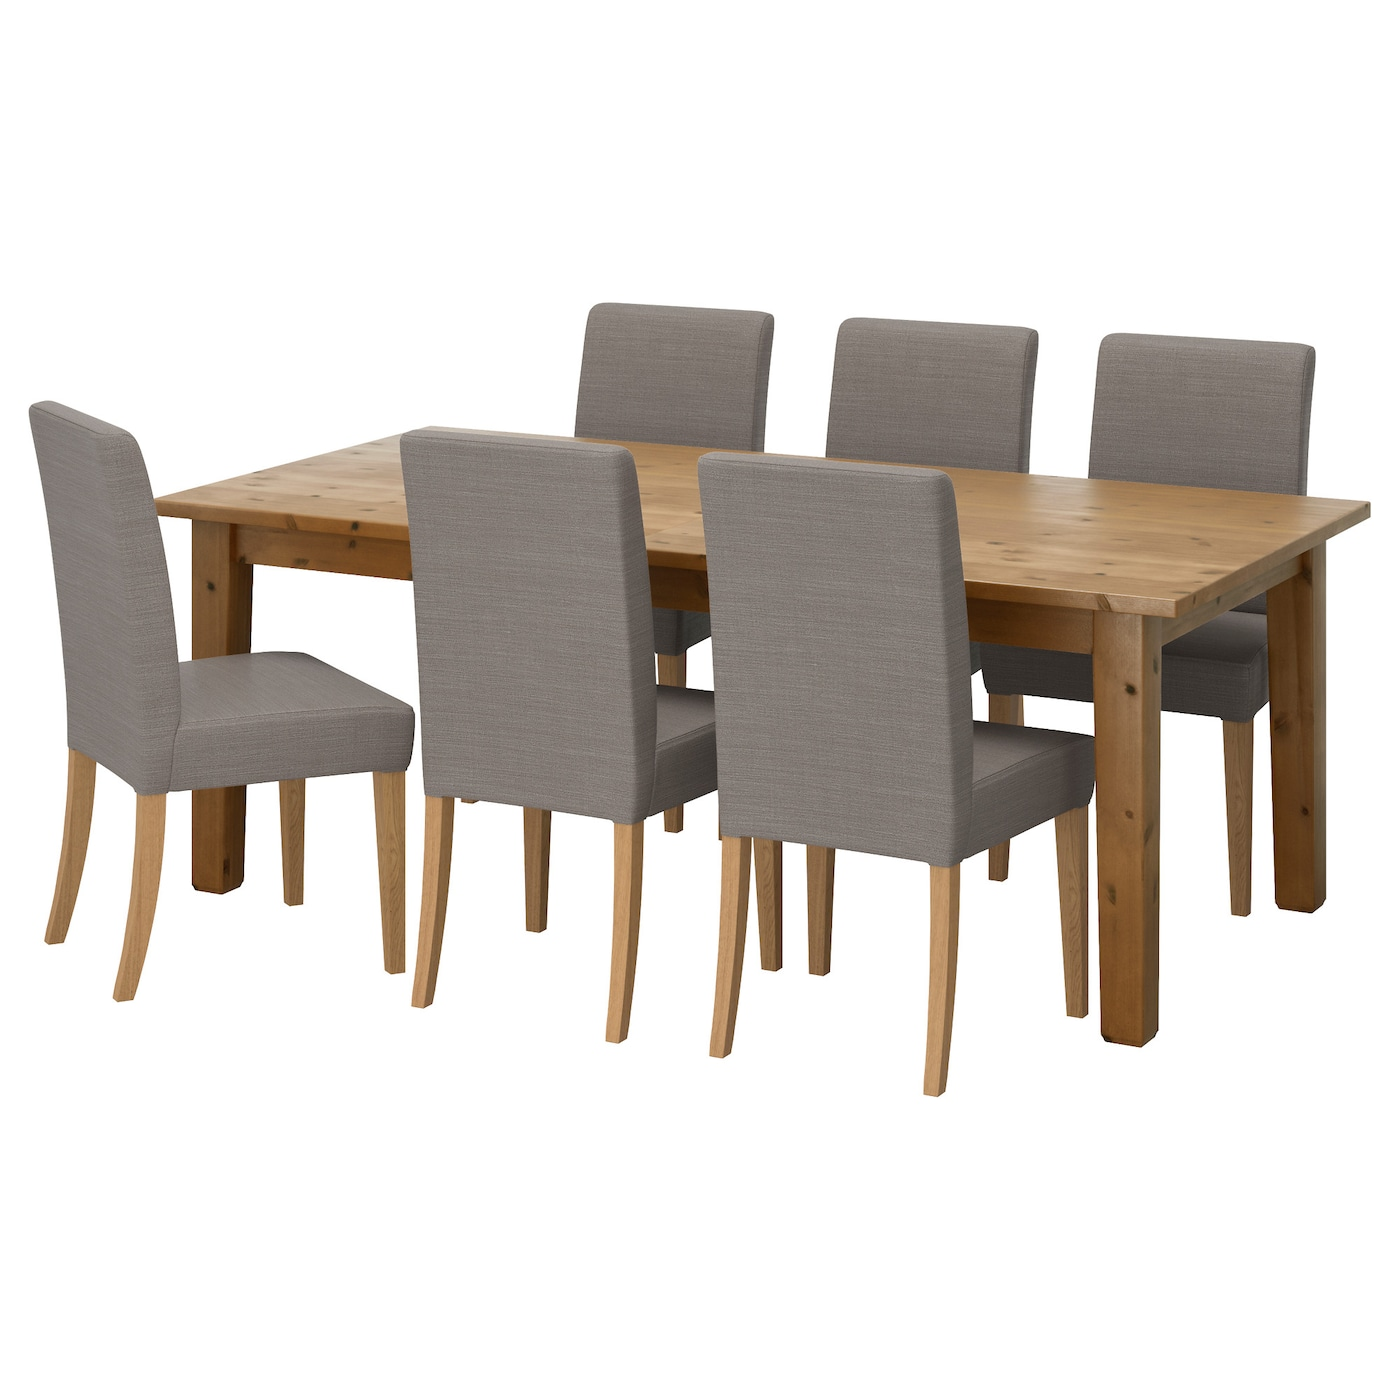 Beau IKEA HENRIKSDAL/STORNÄS Table And 6 Chairs